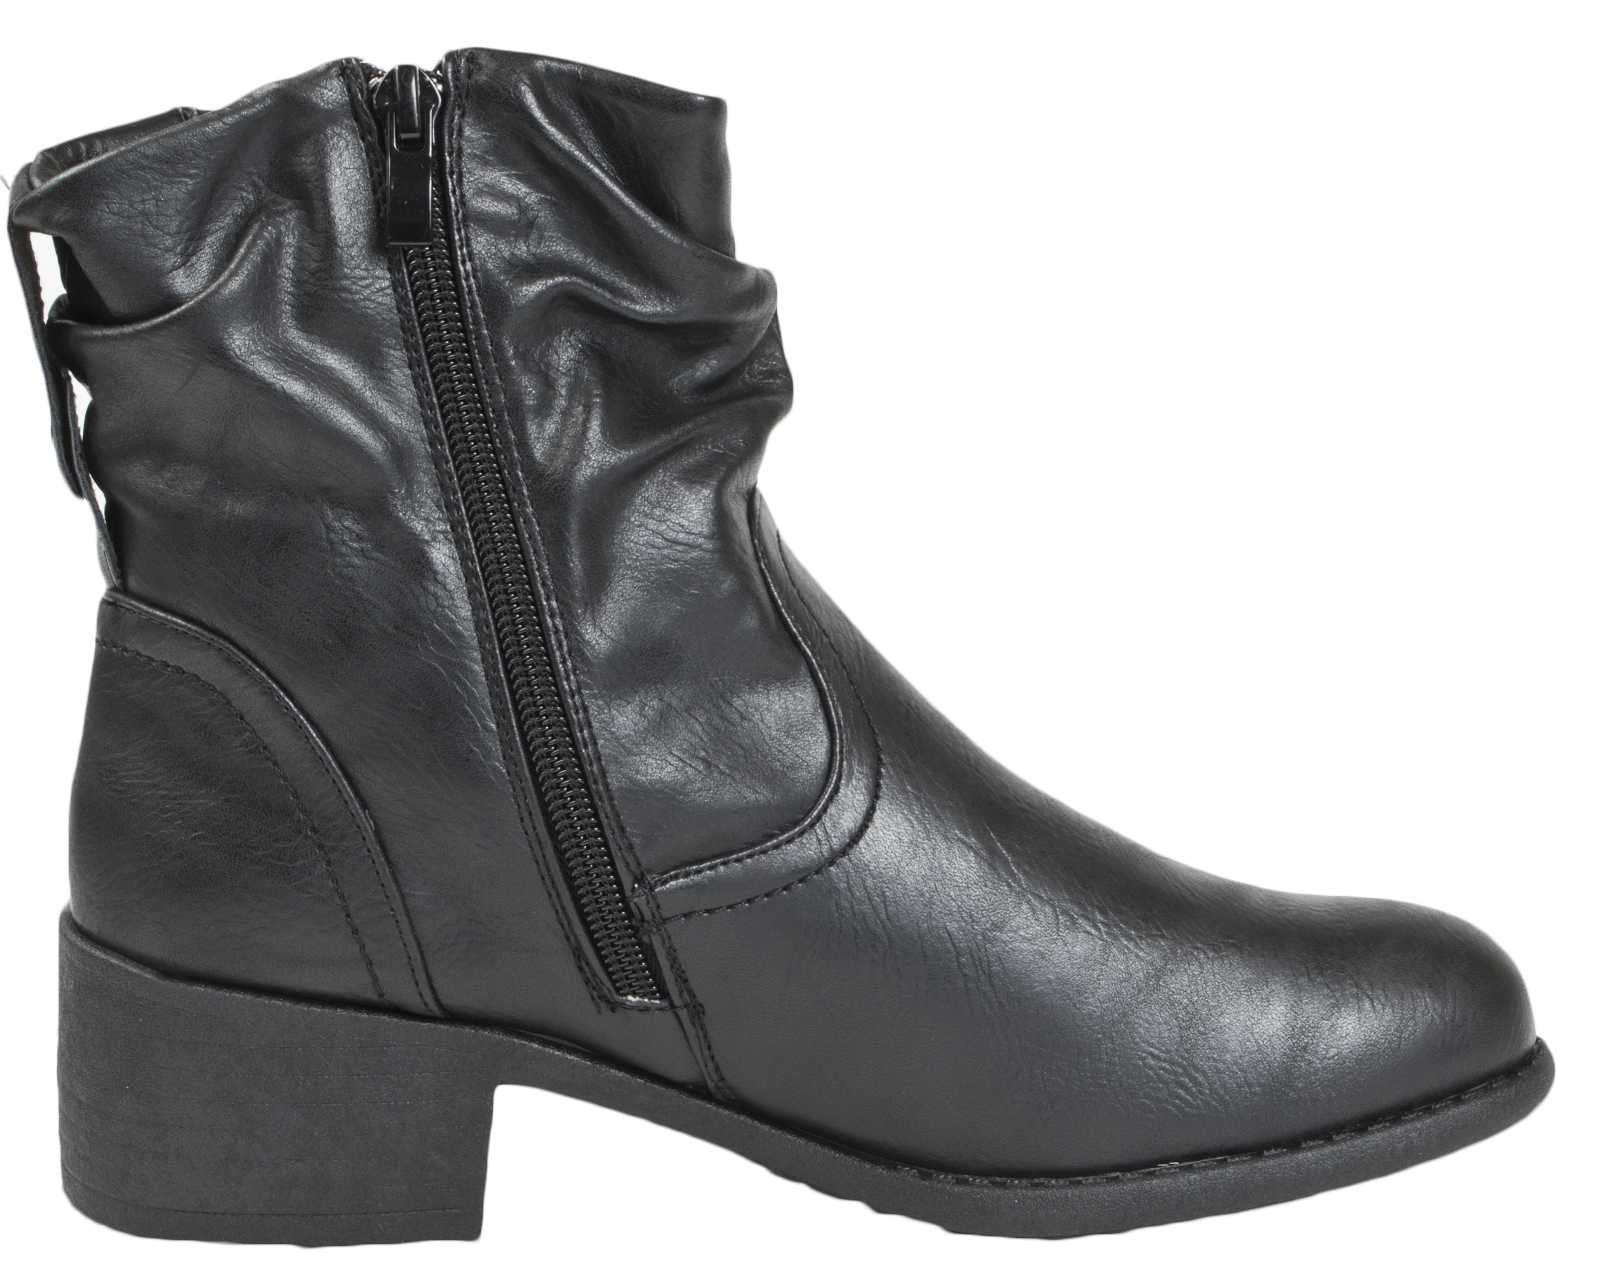 f77d9e64caad Womens Comfort Low Heel Classic Ankle Boots Faux Leather Zip Or Lace ...